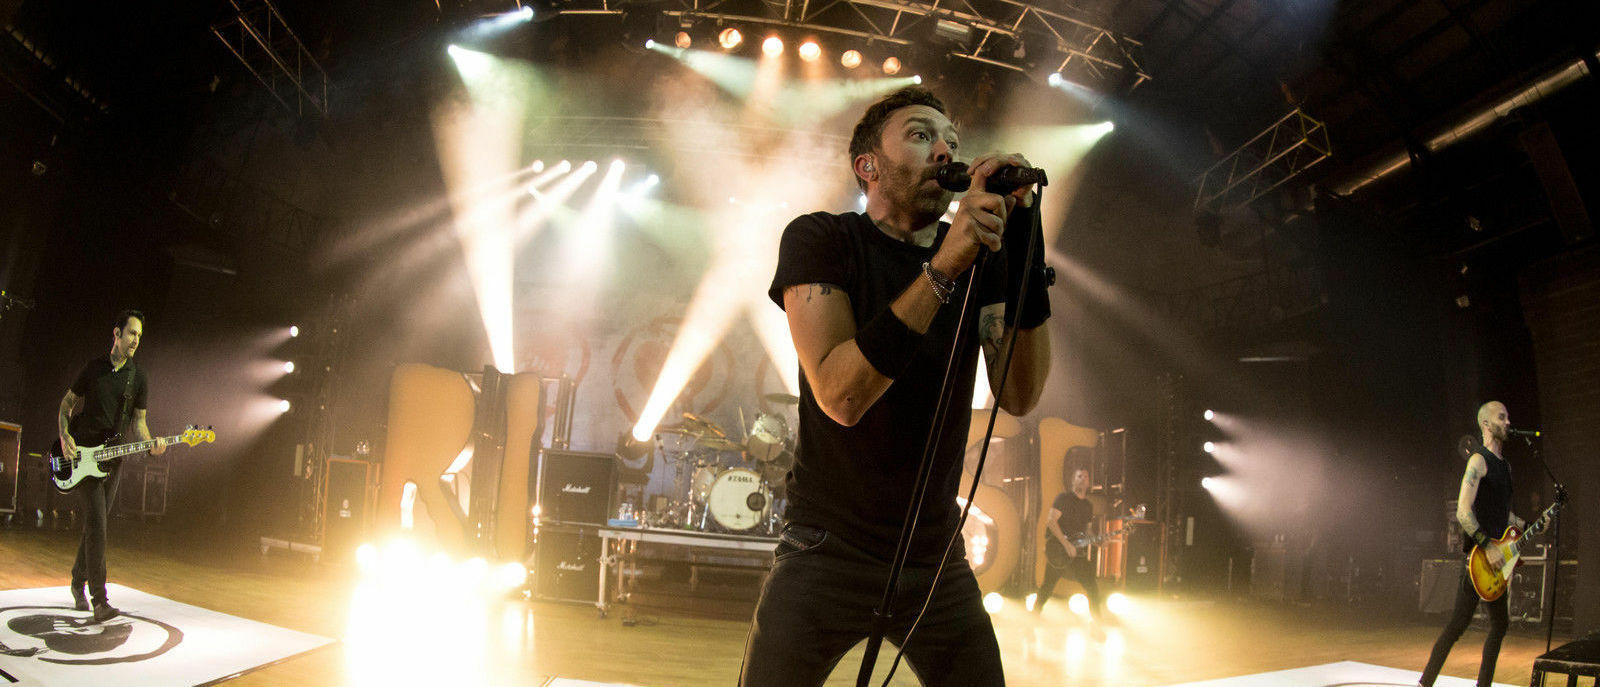 Rise Against Tickets (18+ or accompanied by guardian)